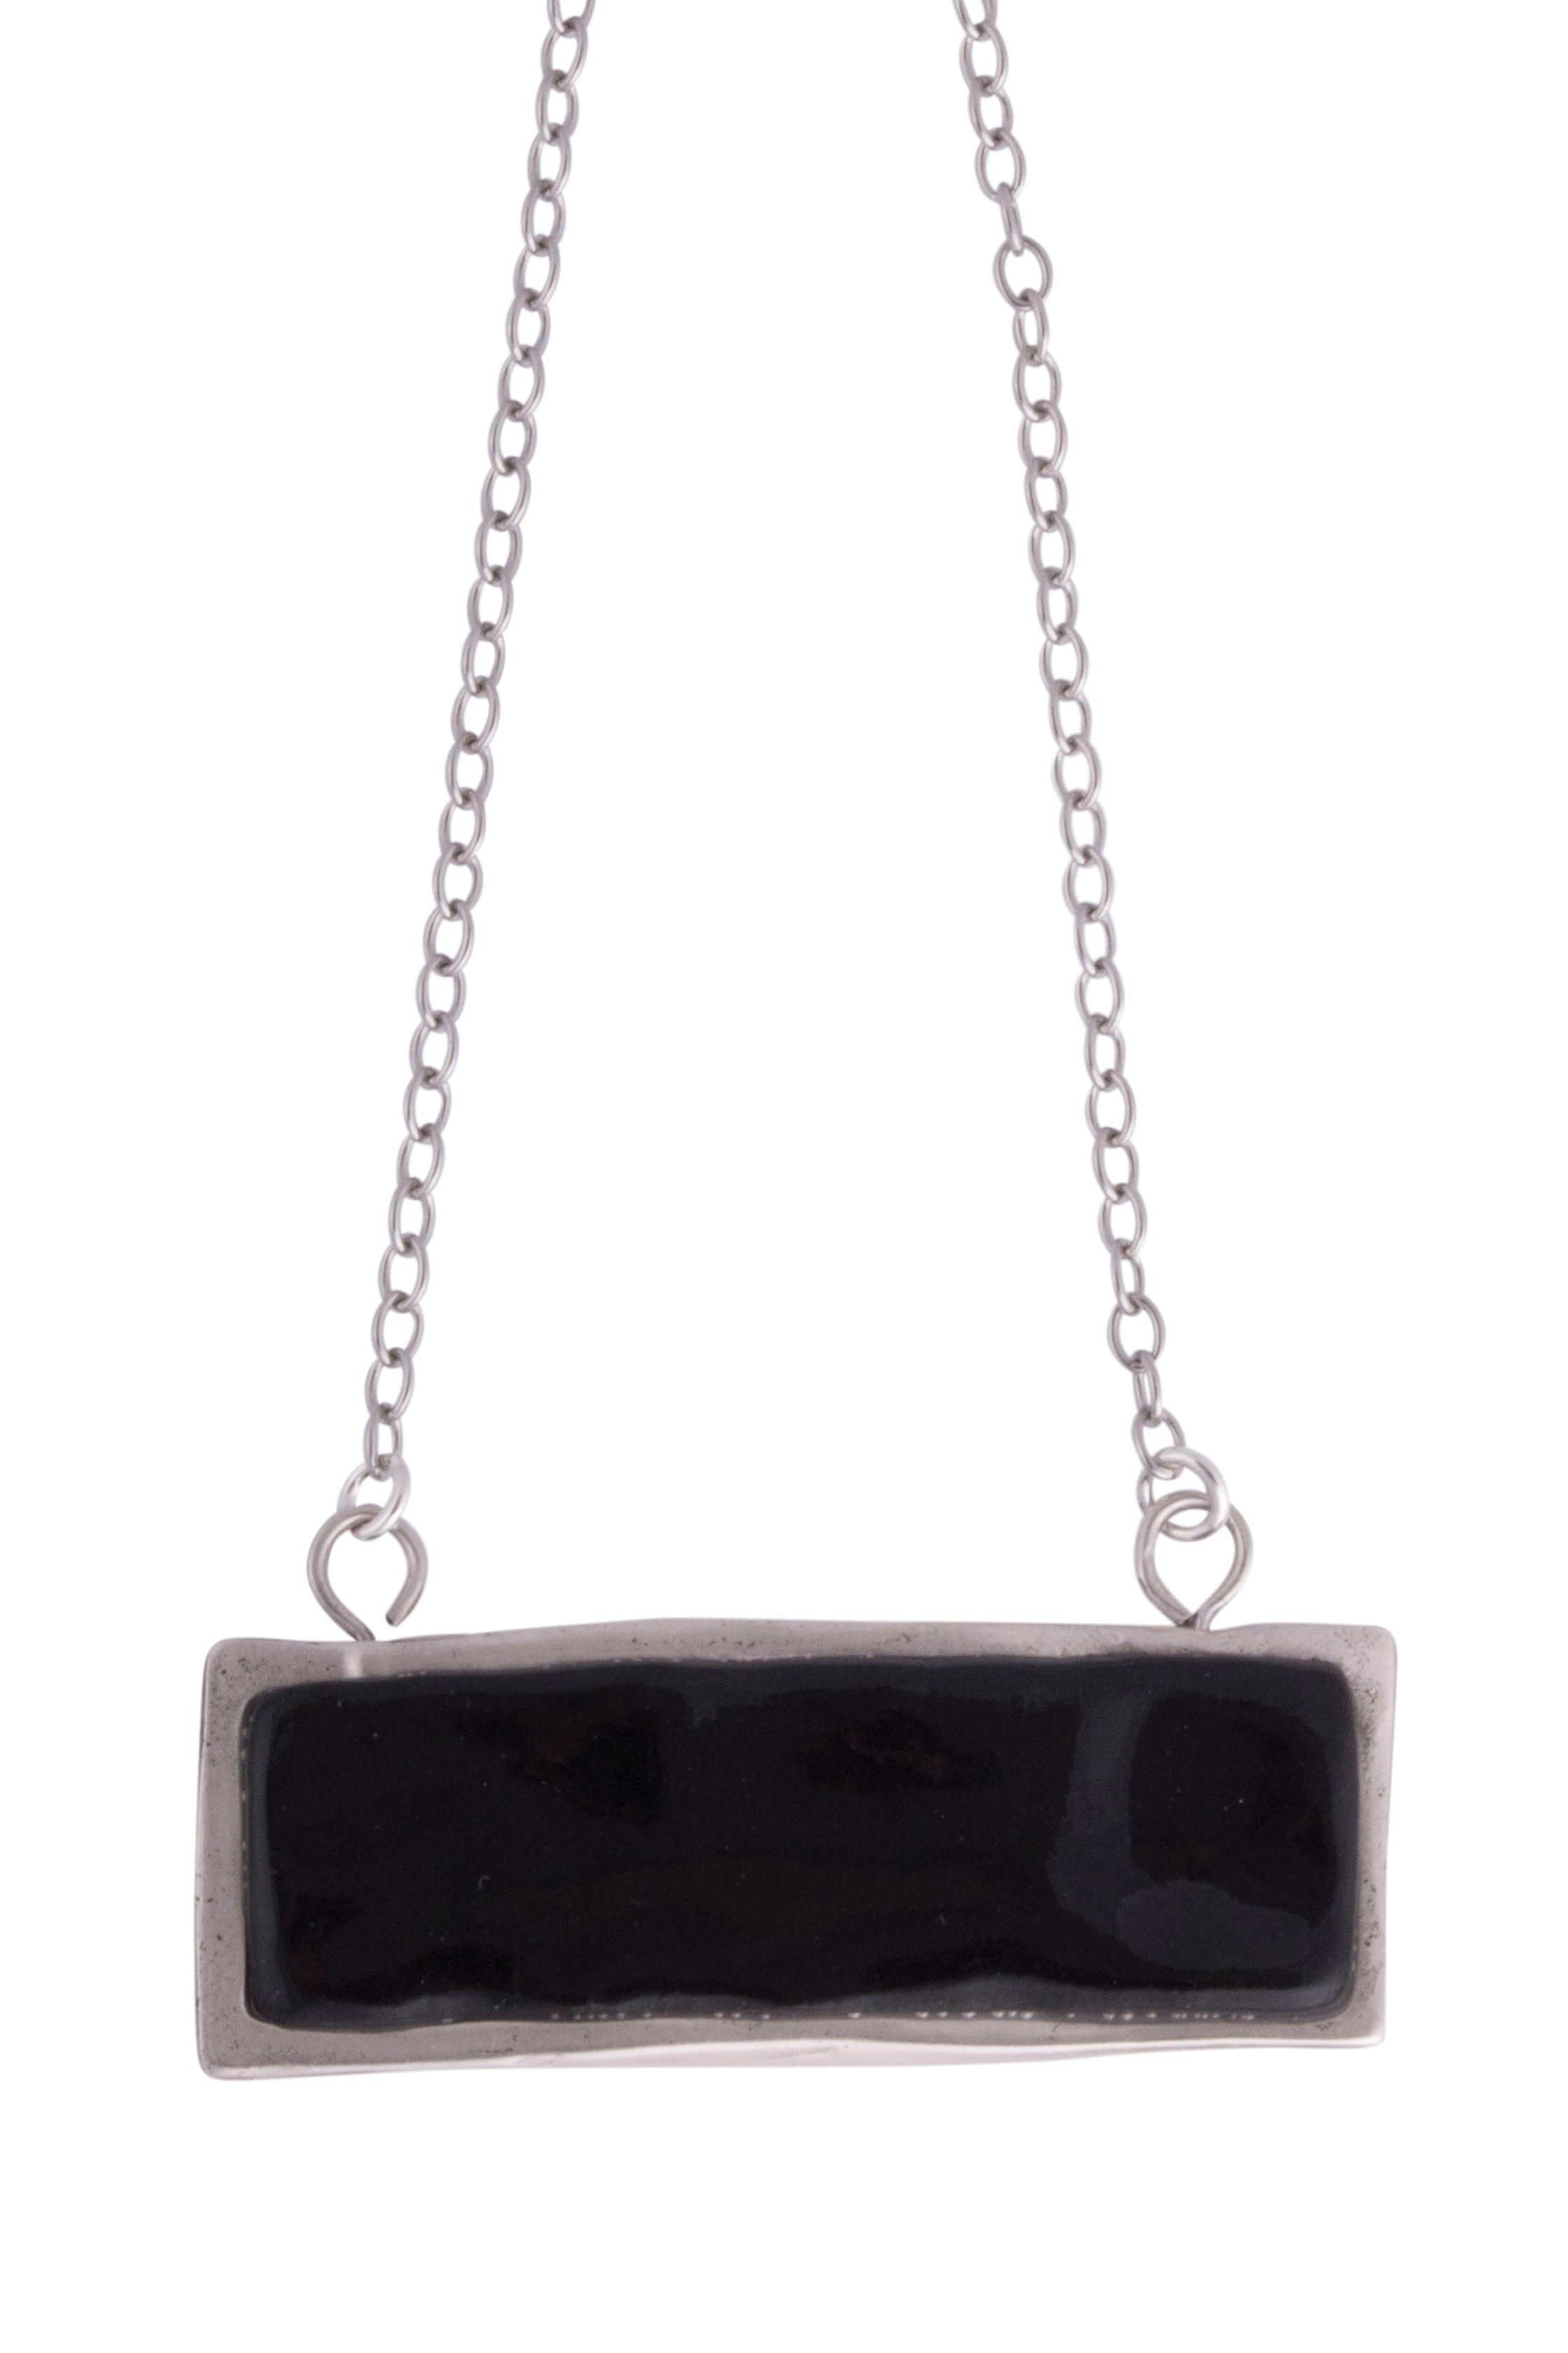 Take a look at our new jewelry at alexandrainn.se